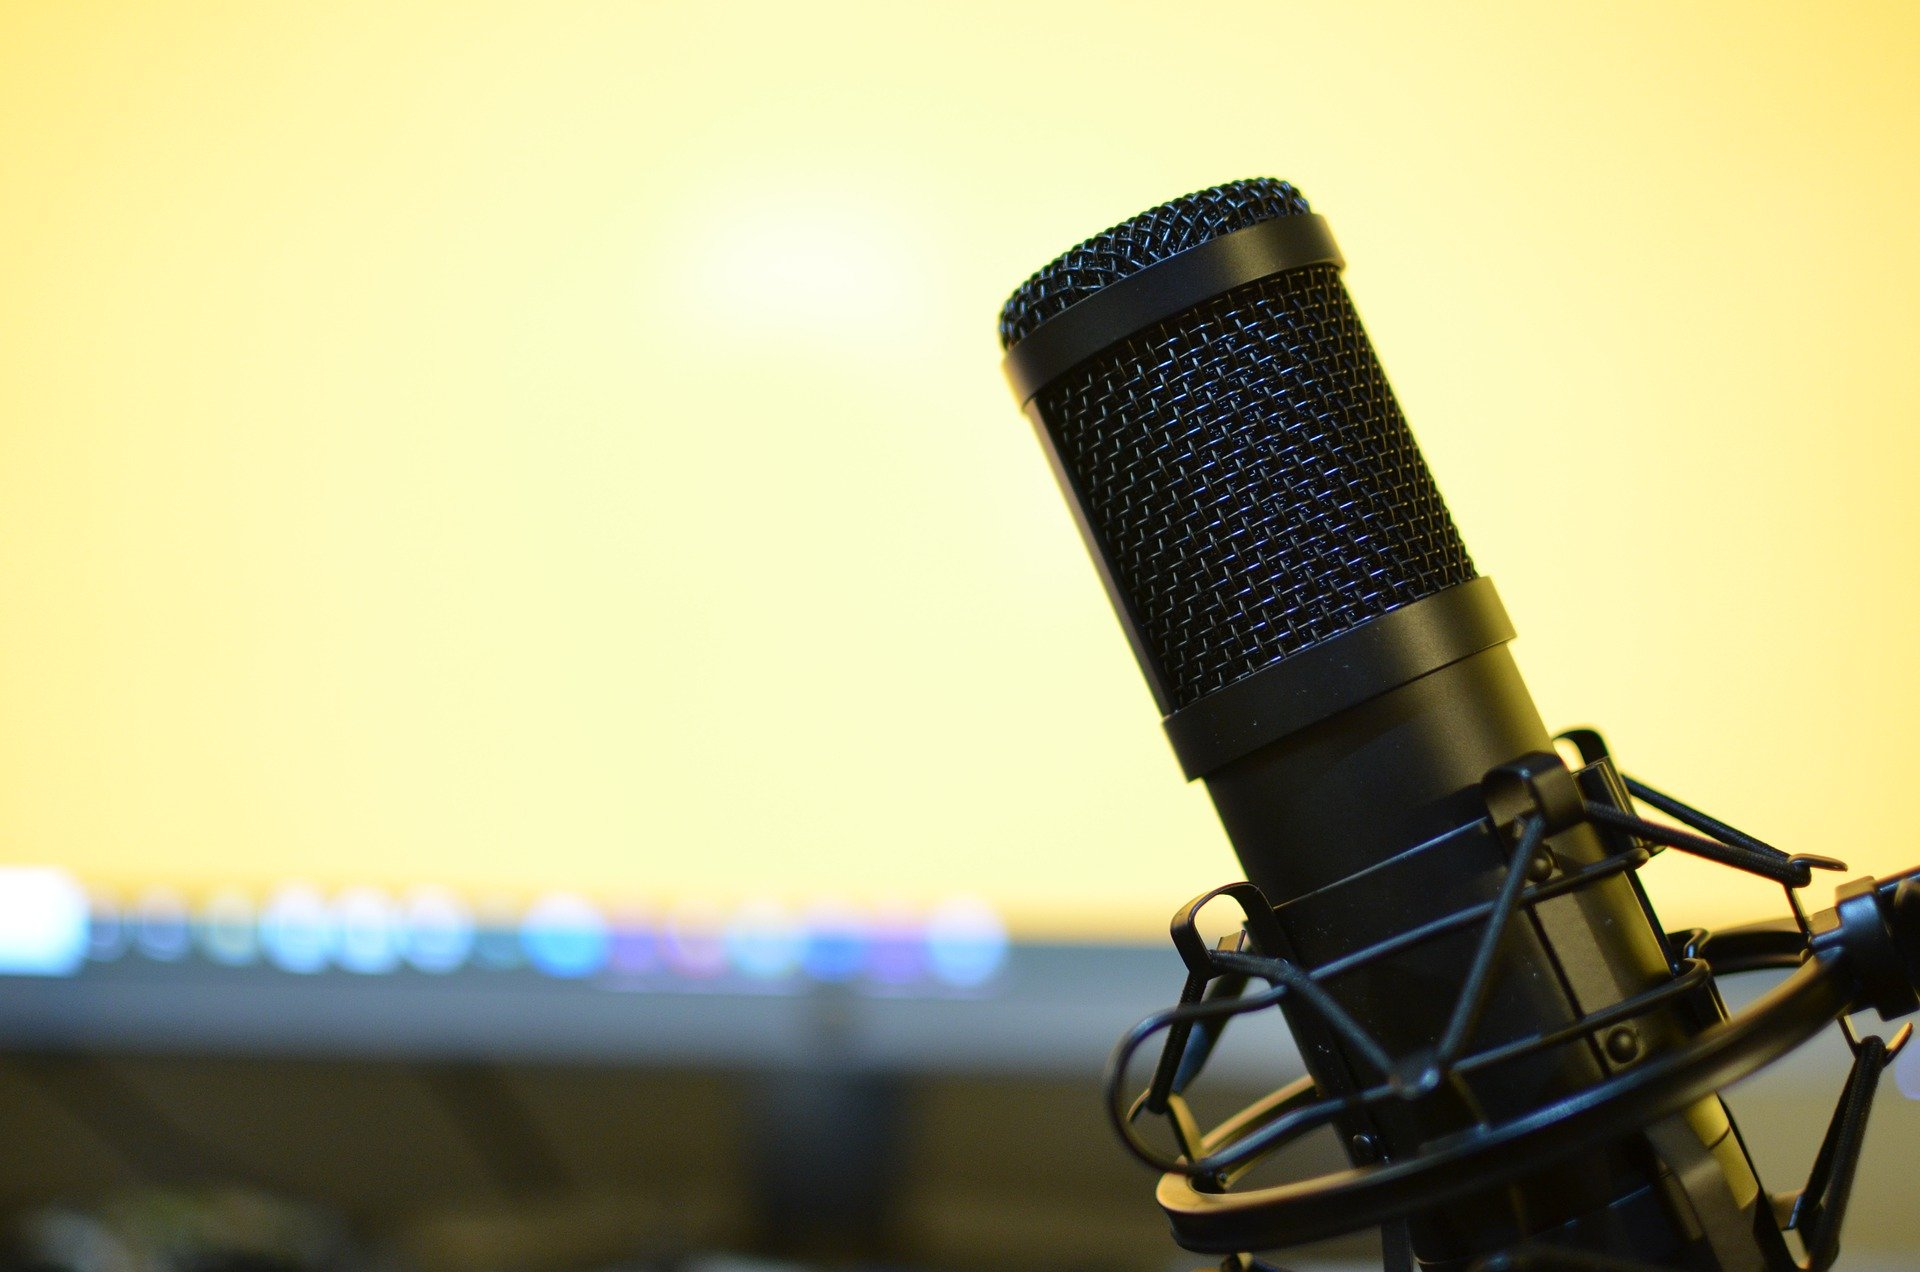 Podcast Microphone to amplify your message